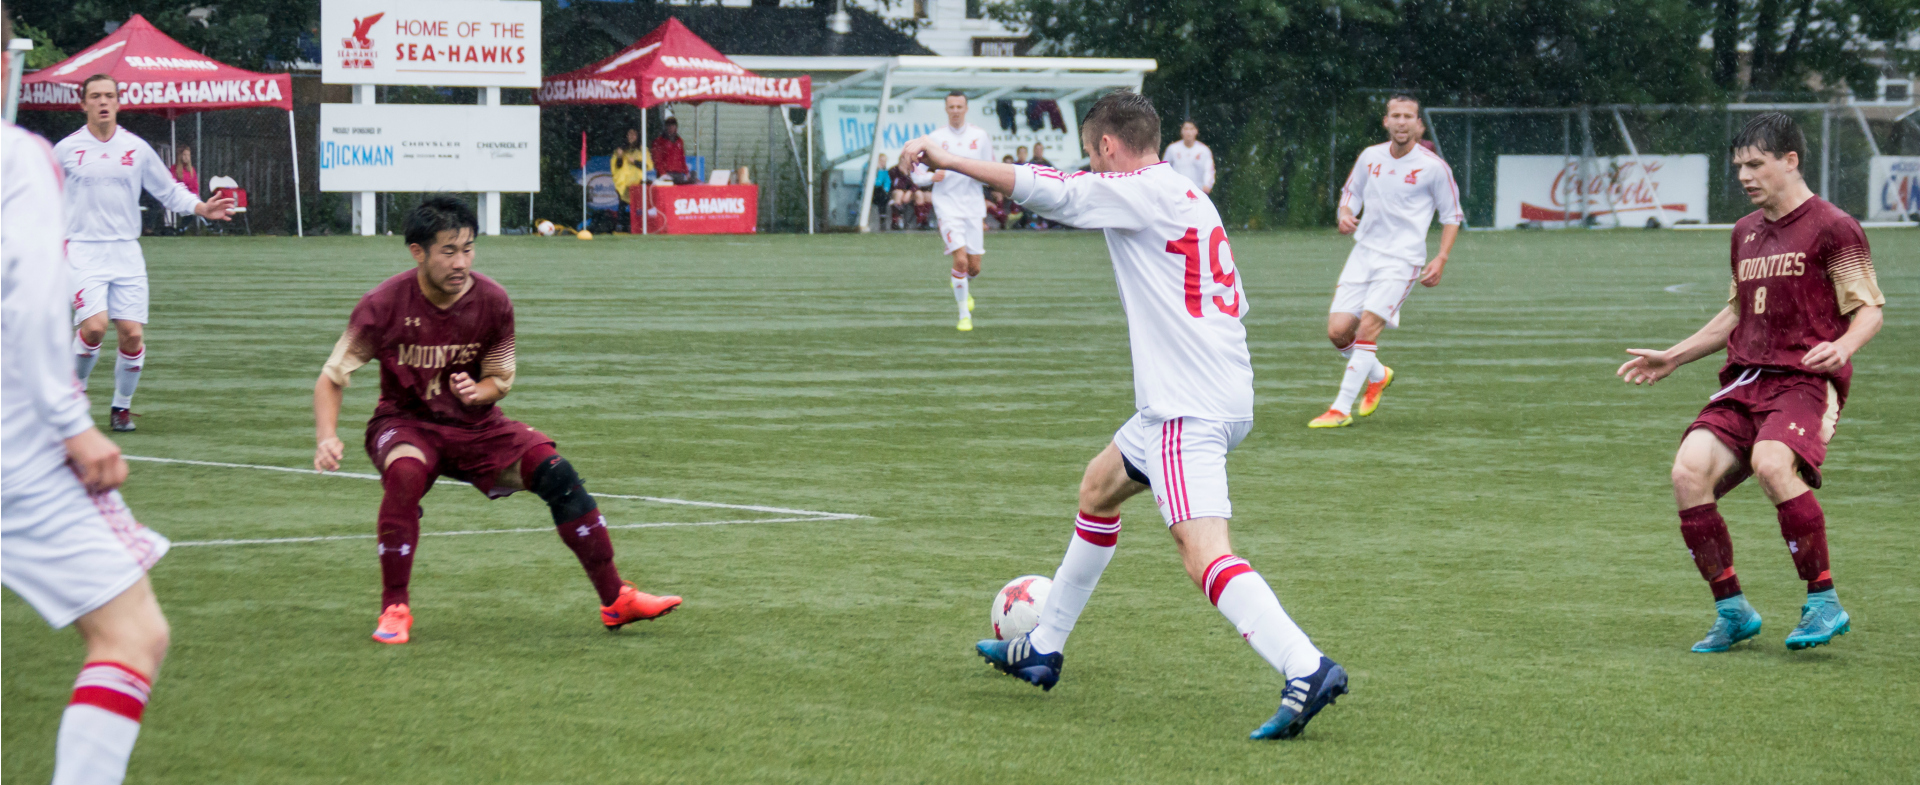 Sea-Hawks Host Varsity Reds in Crucial Series